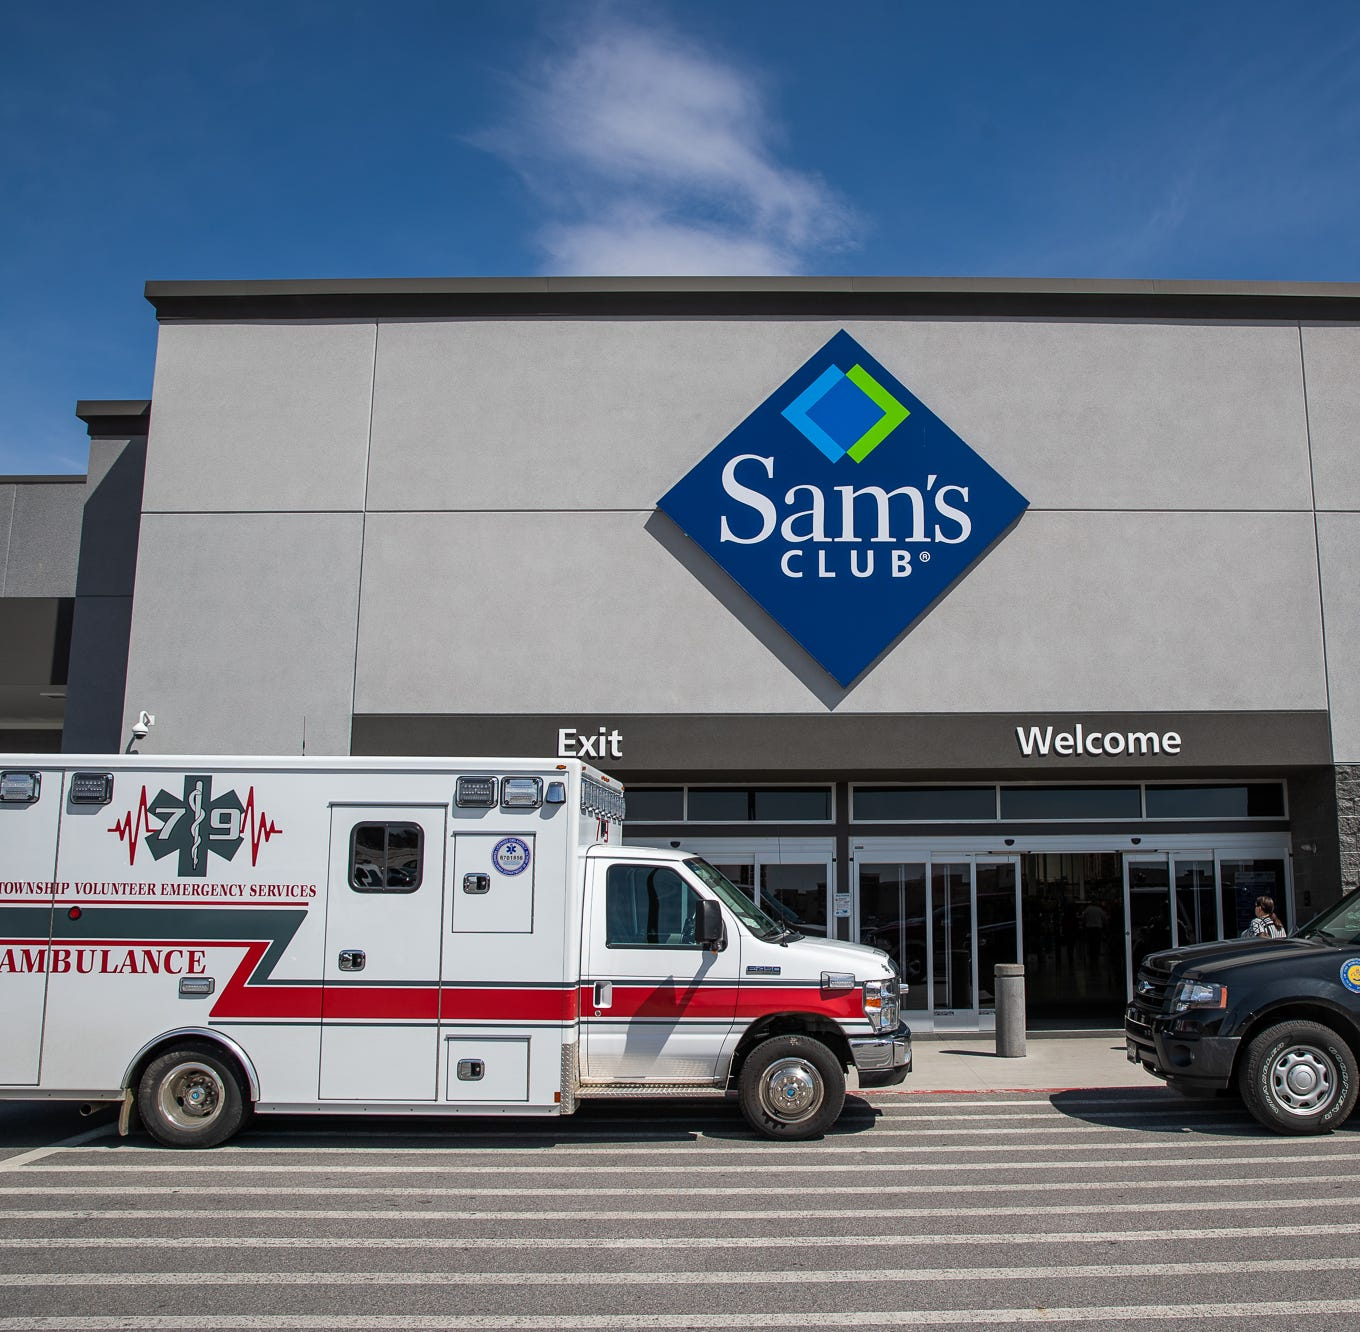 One injured in shooting at Hanover Sam's Club, police investigating